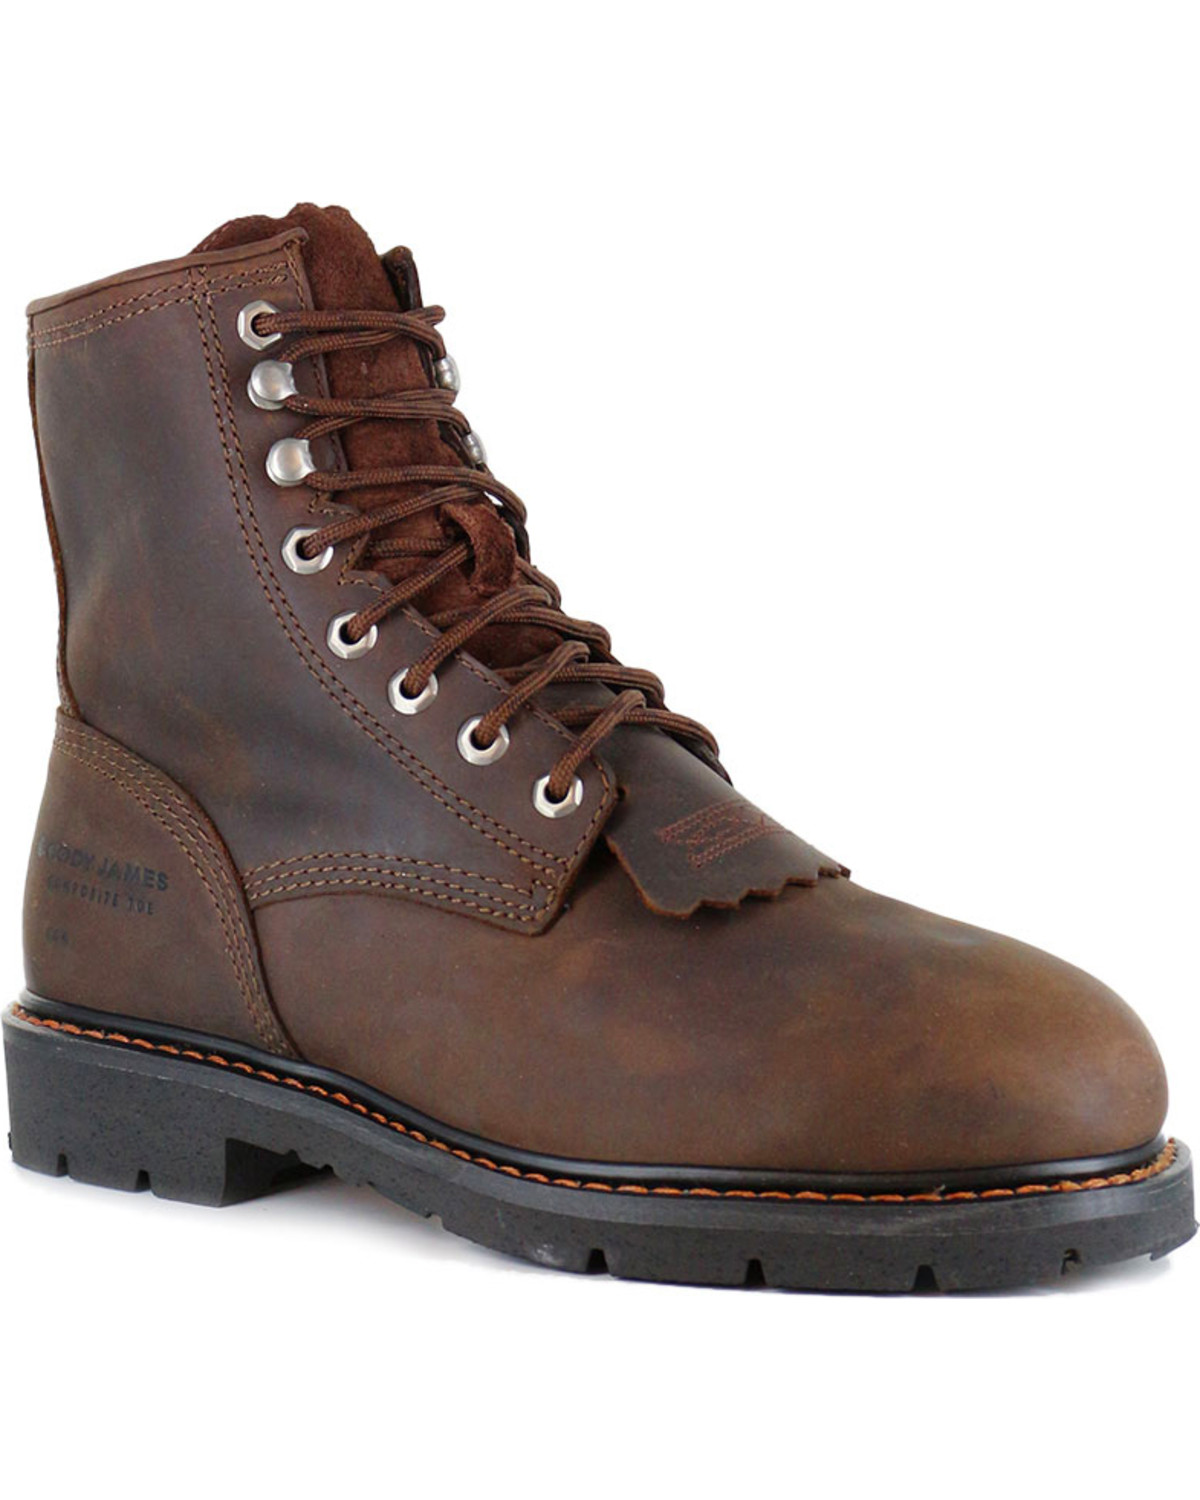 Cody James® Men's Lace-Up Round